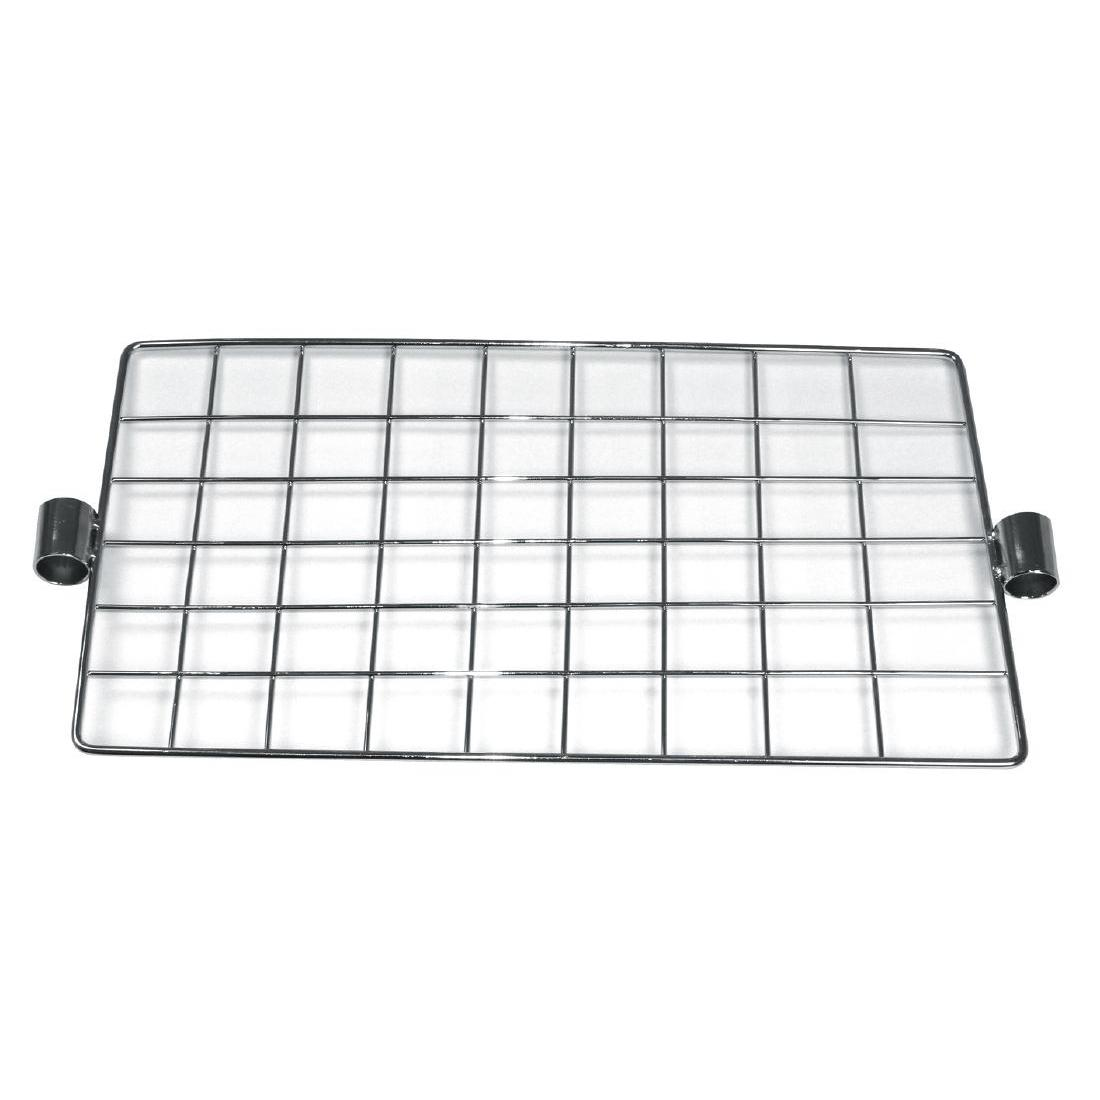 GF981 - Mesh Hanging Panel for Vogue Wire Shelving 1830mm - Each - GF981